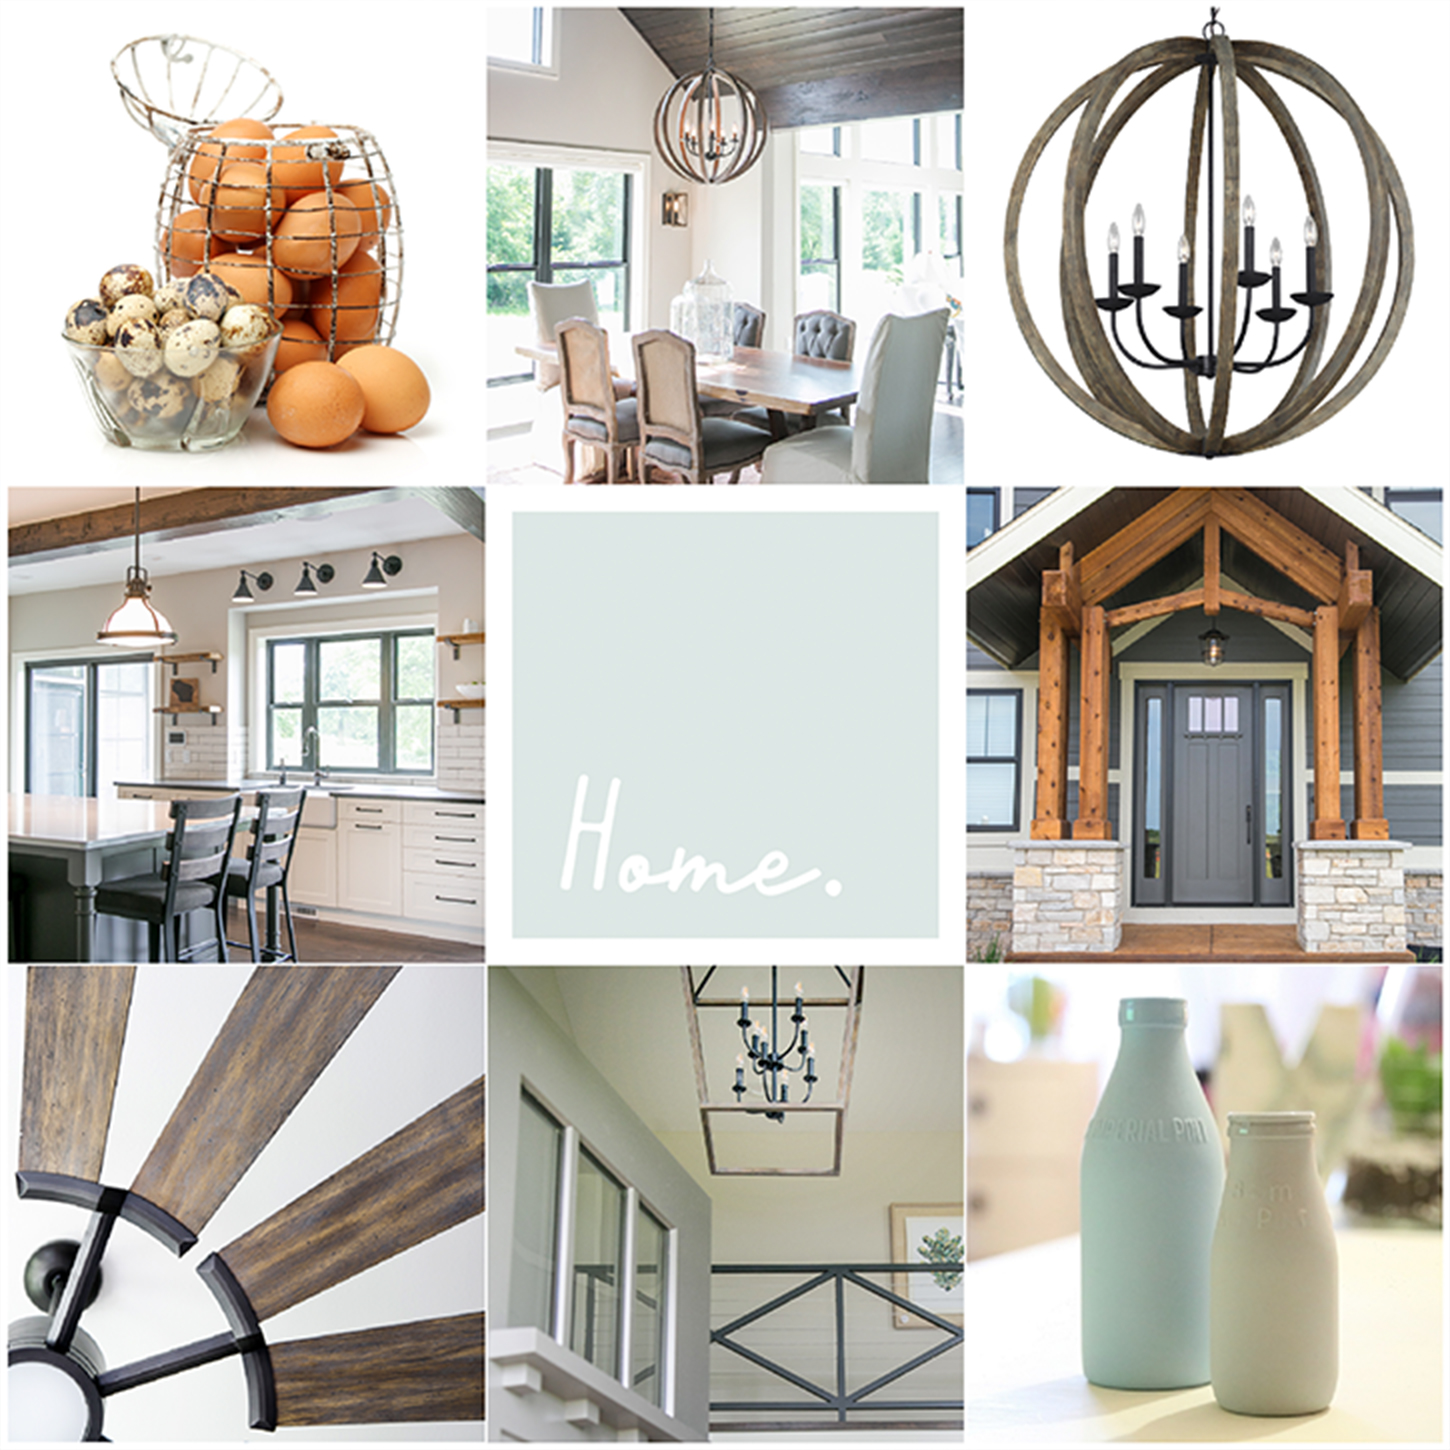 Home lighting and ceiling fan mood board with a warm farmhouse feel